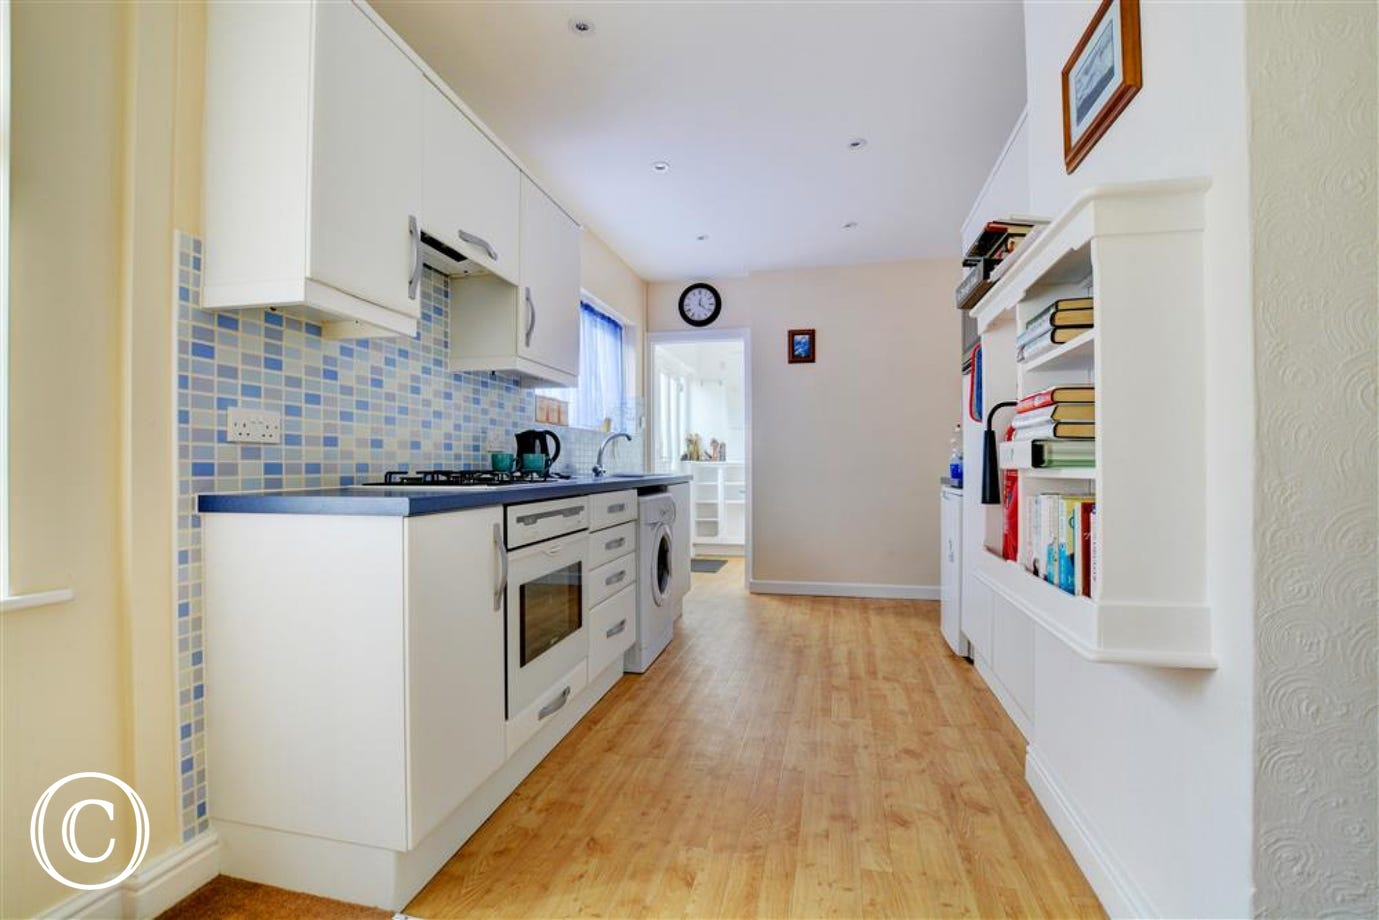 Spacious and well equipped kitchen at this self catering property